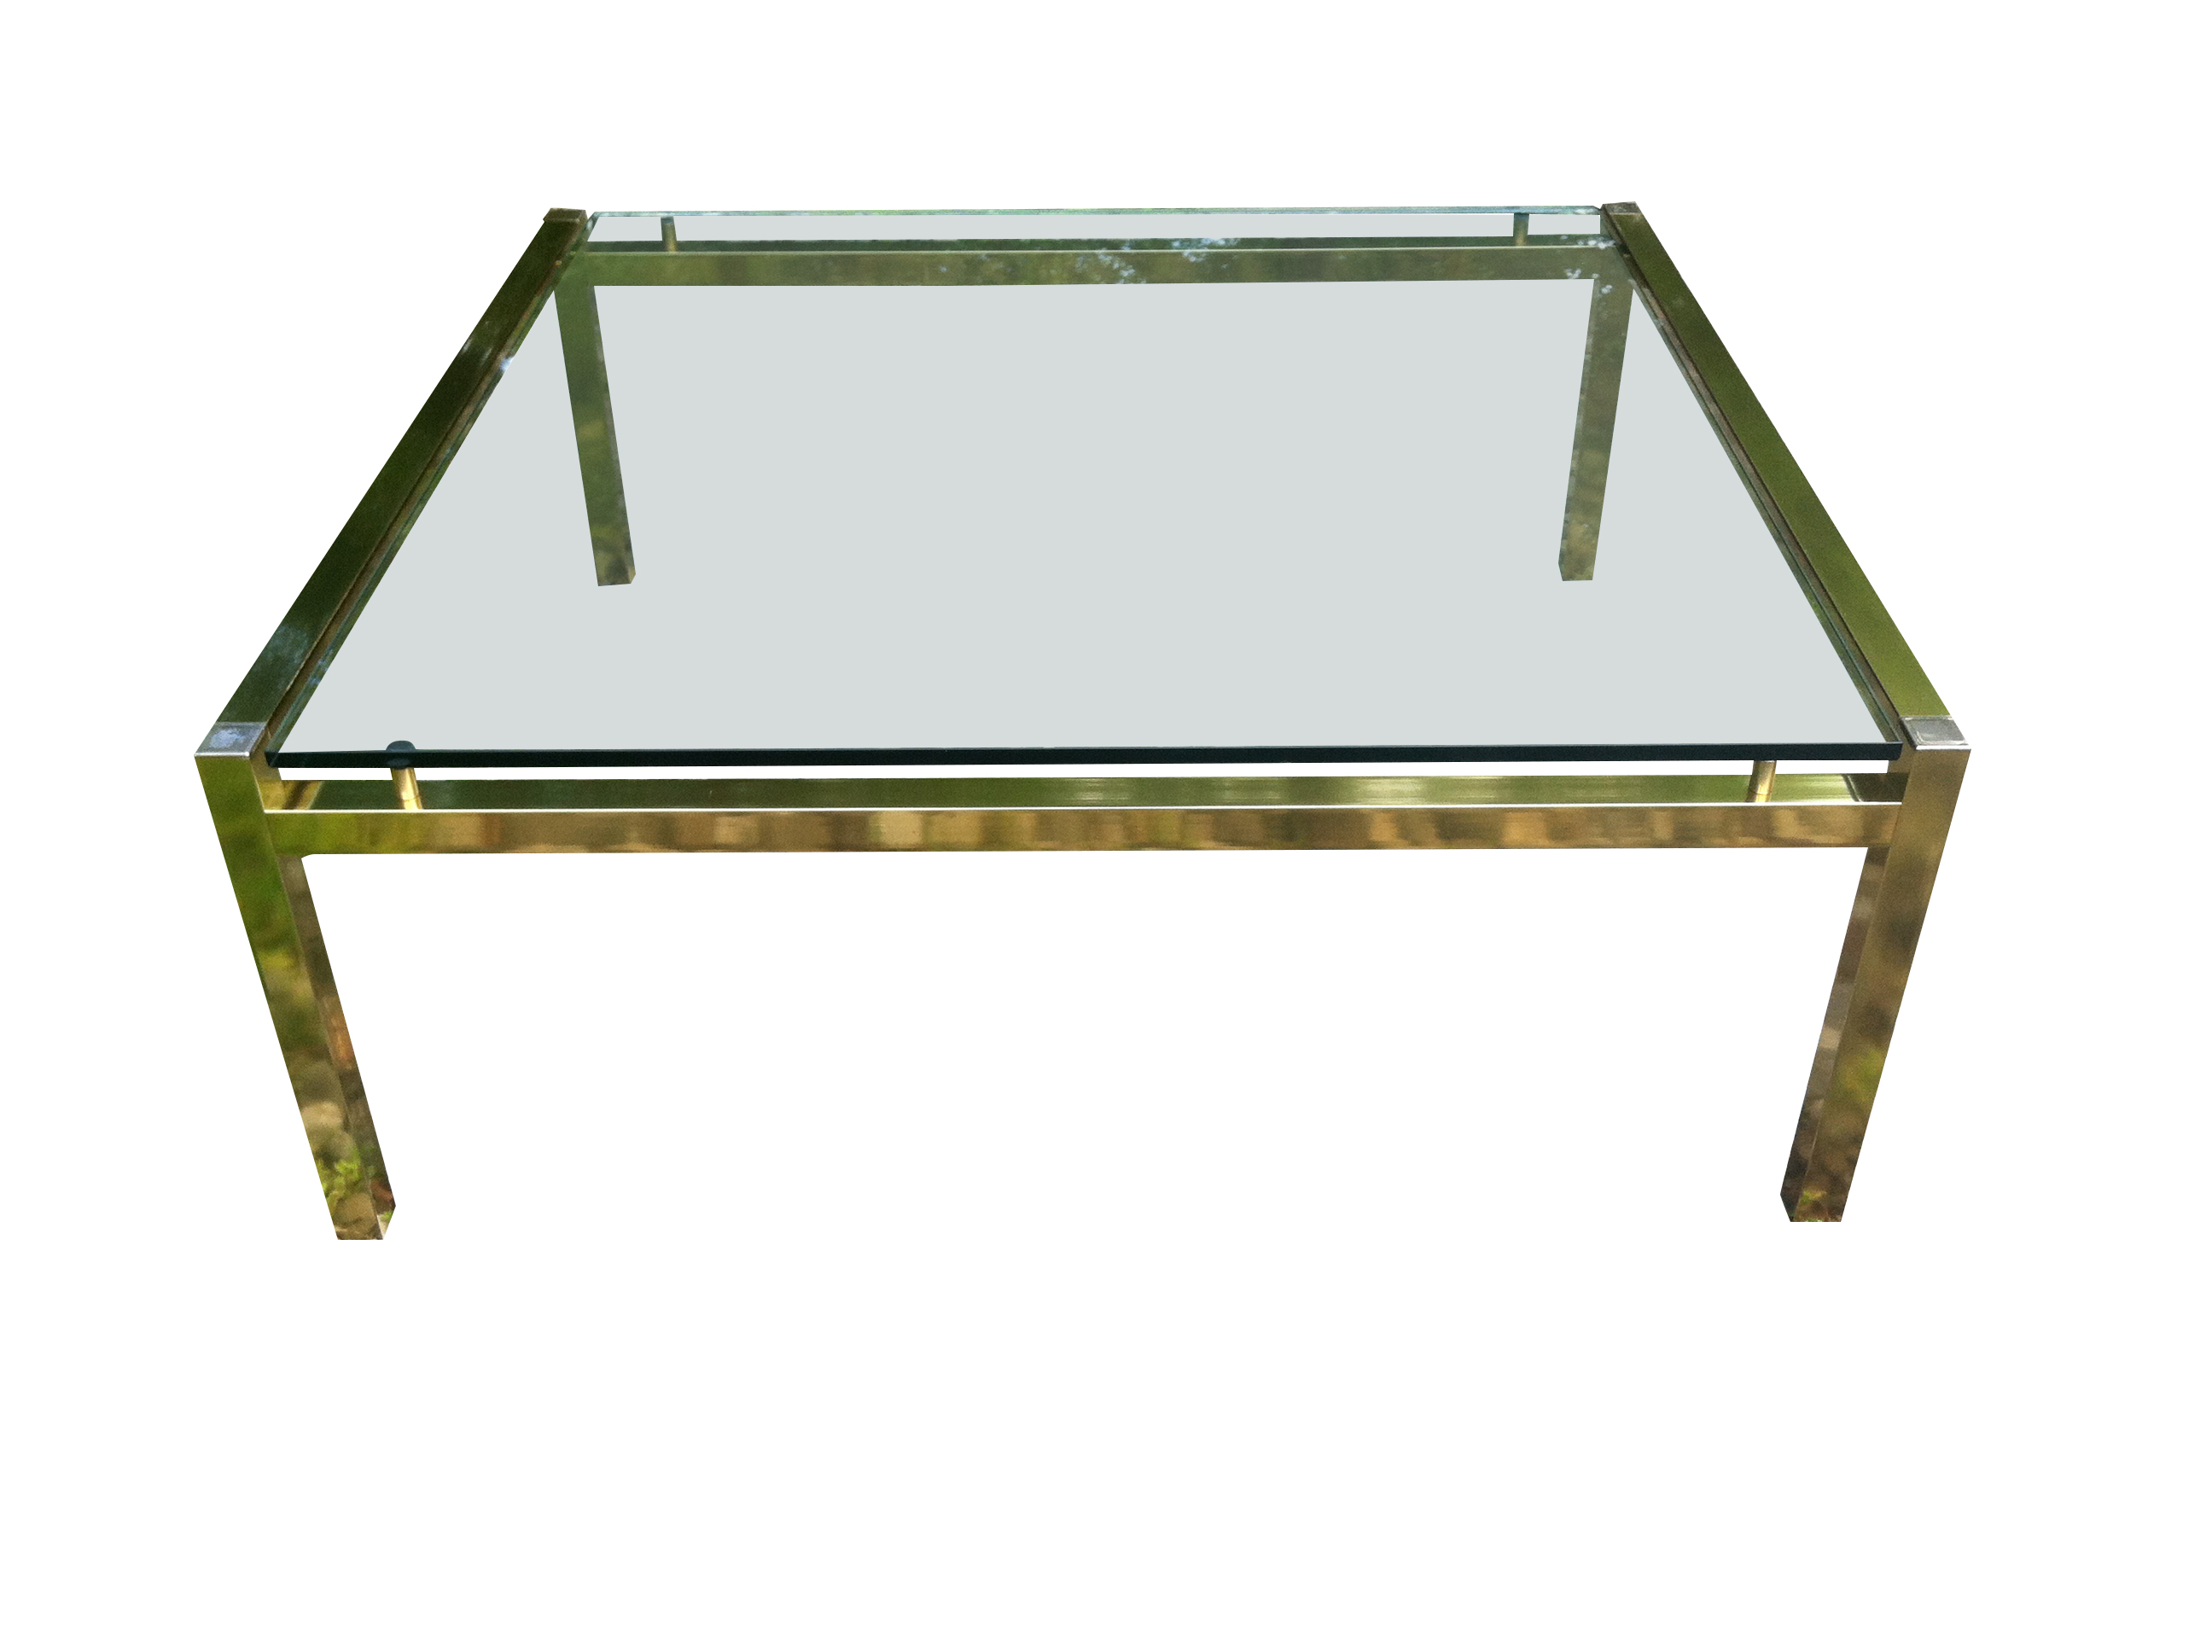 70s brass coffee table with floating glass | omero home